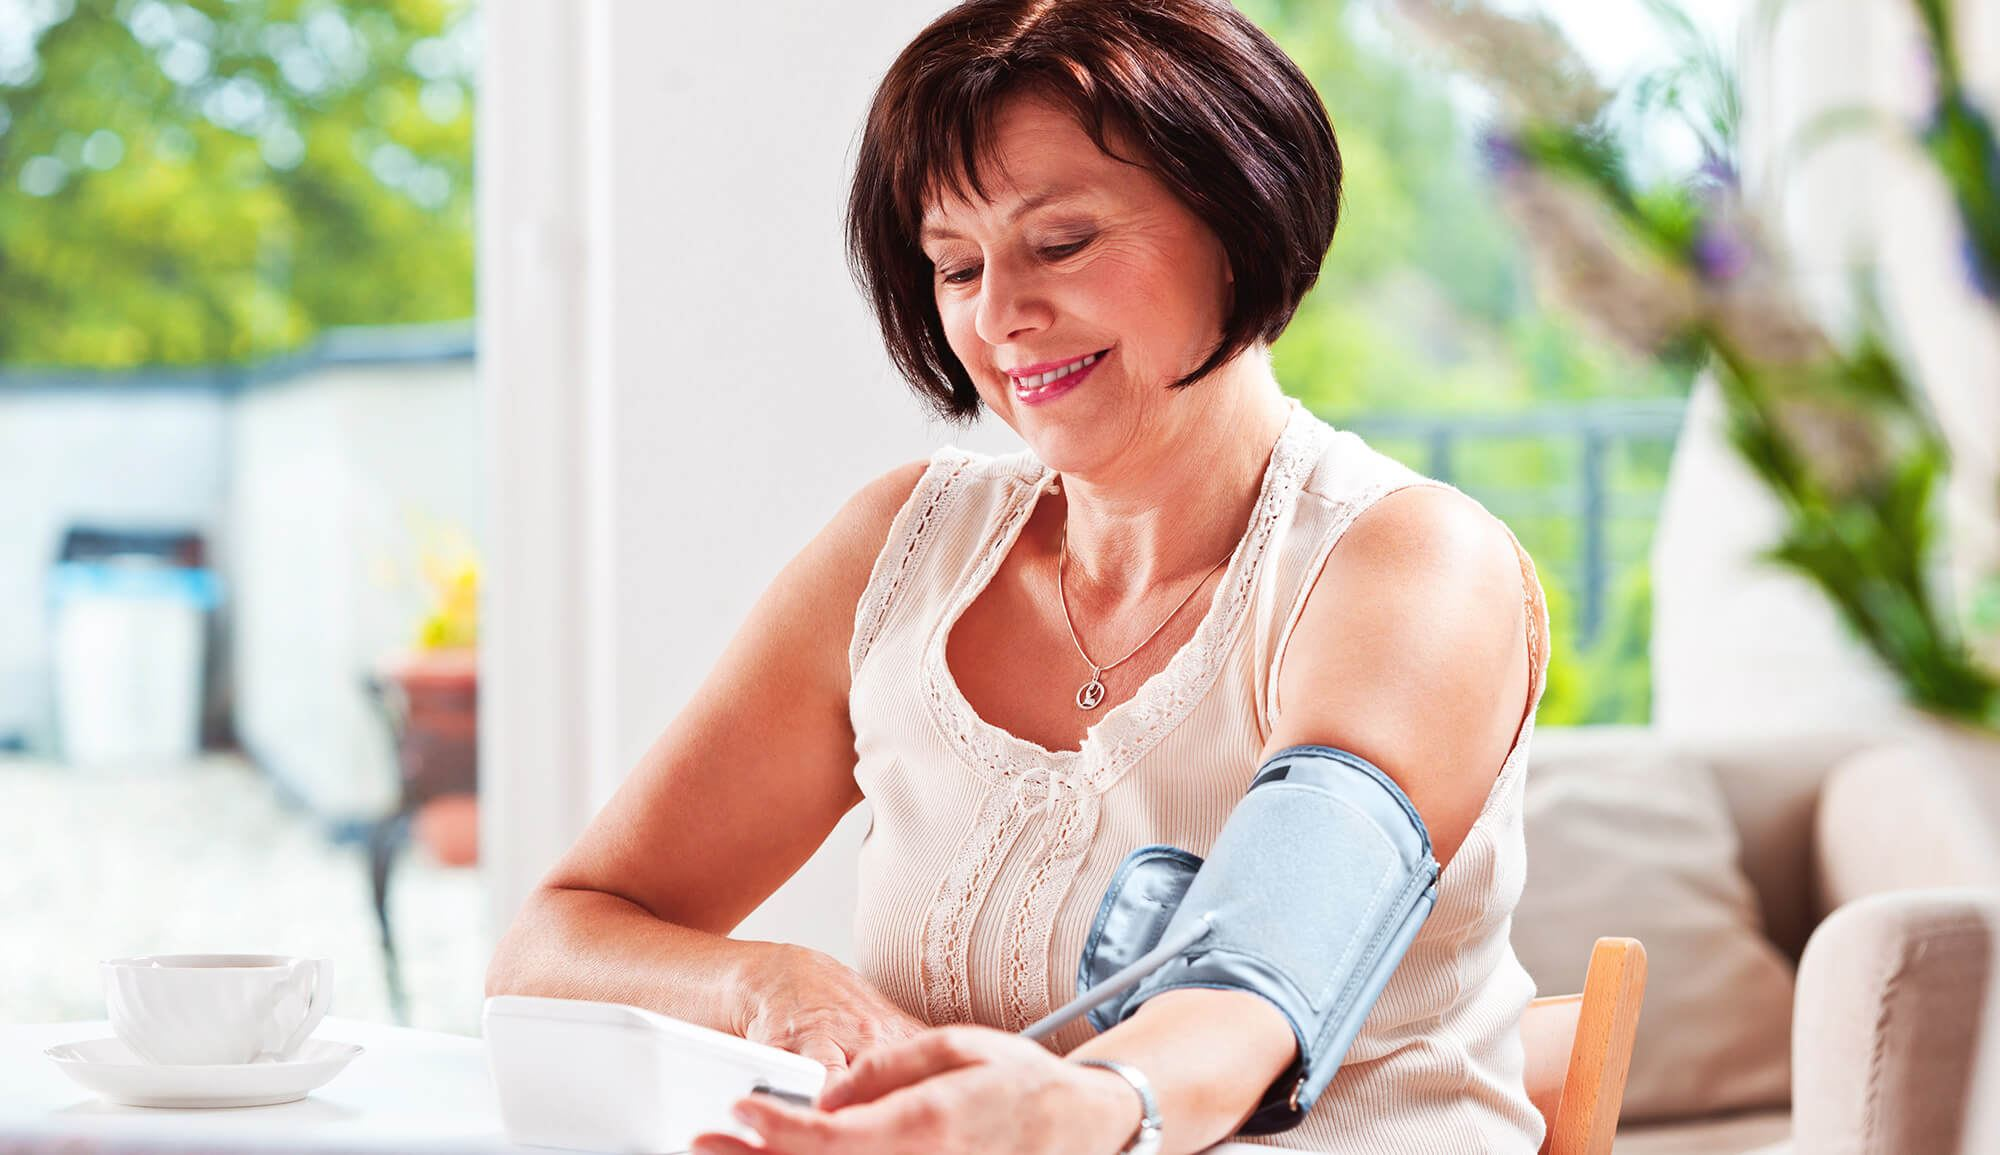 Lady confident in using medical device at home